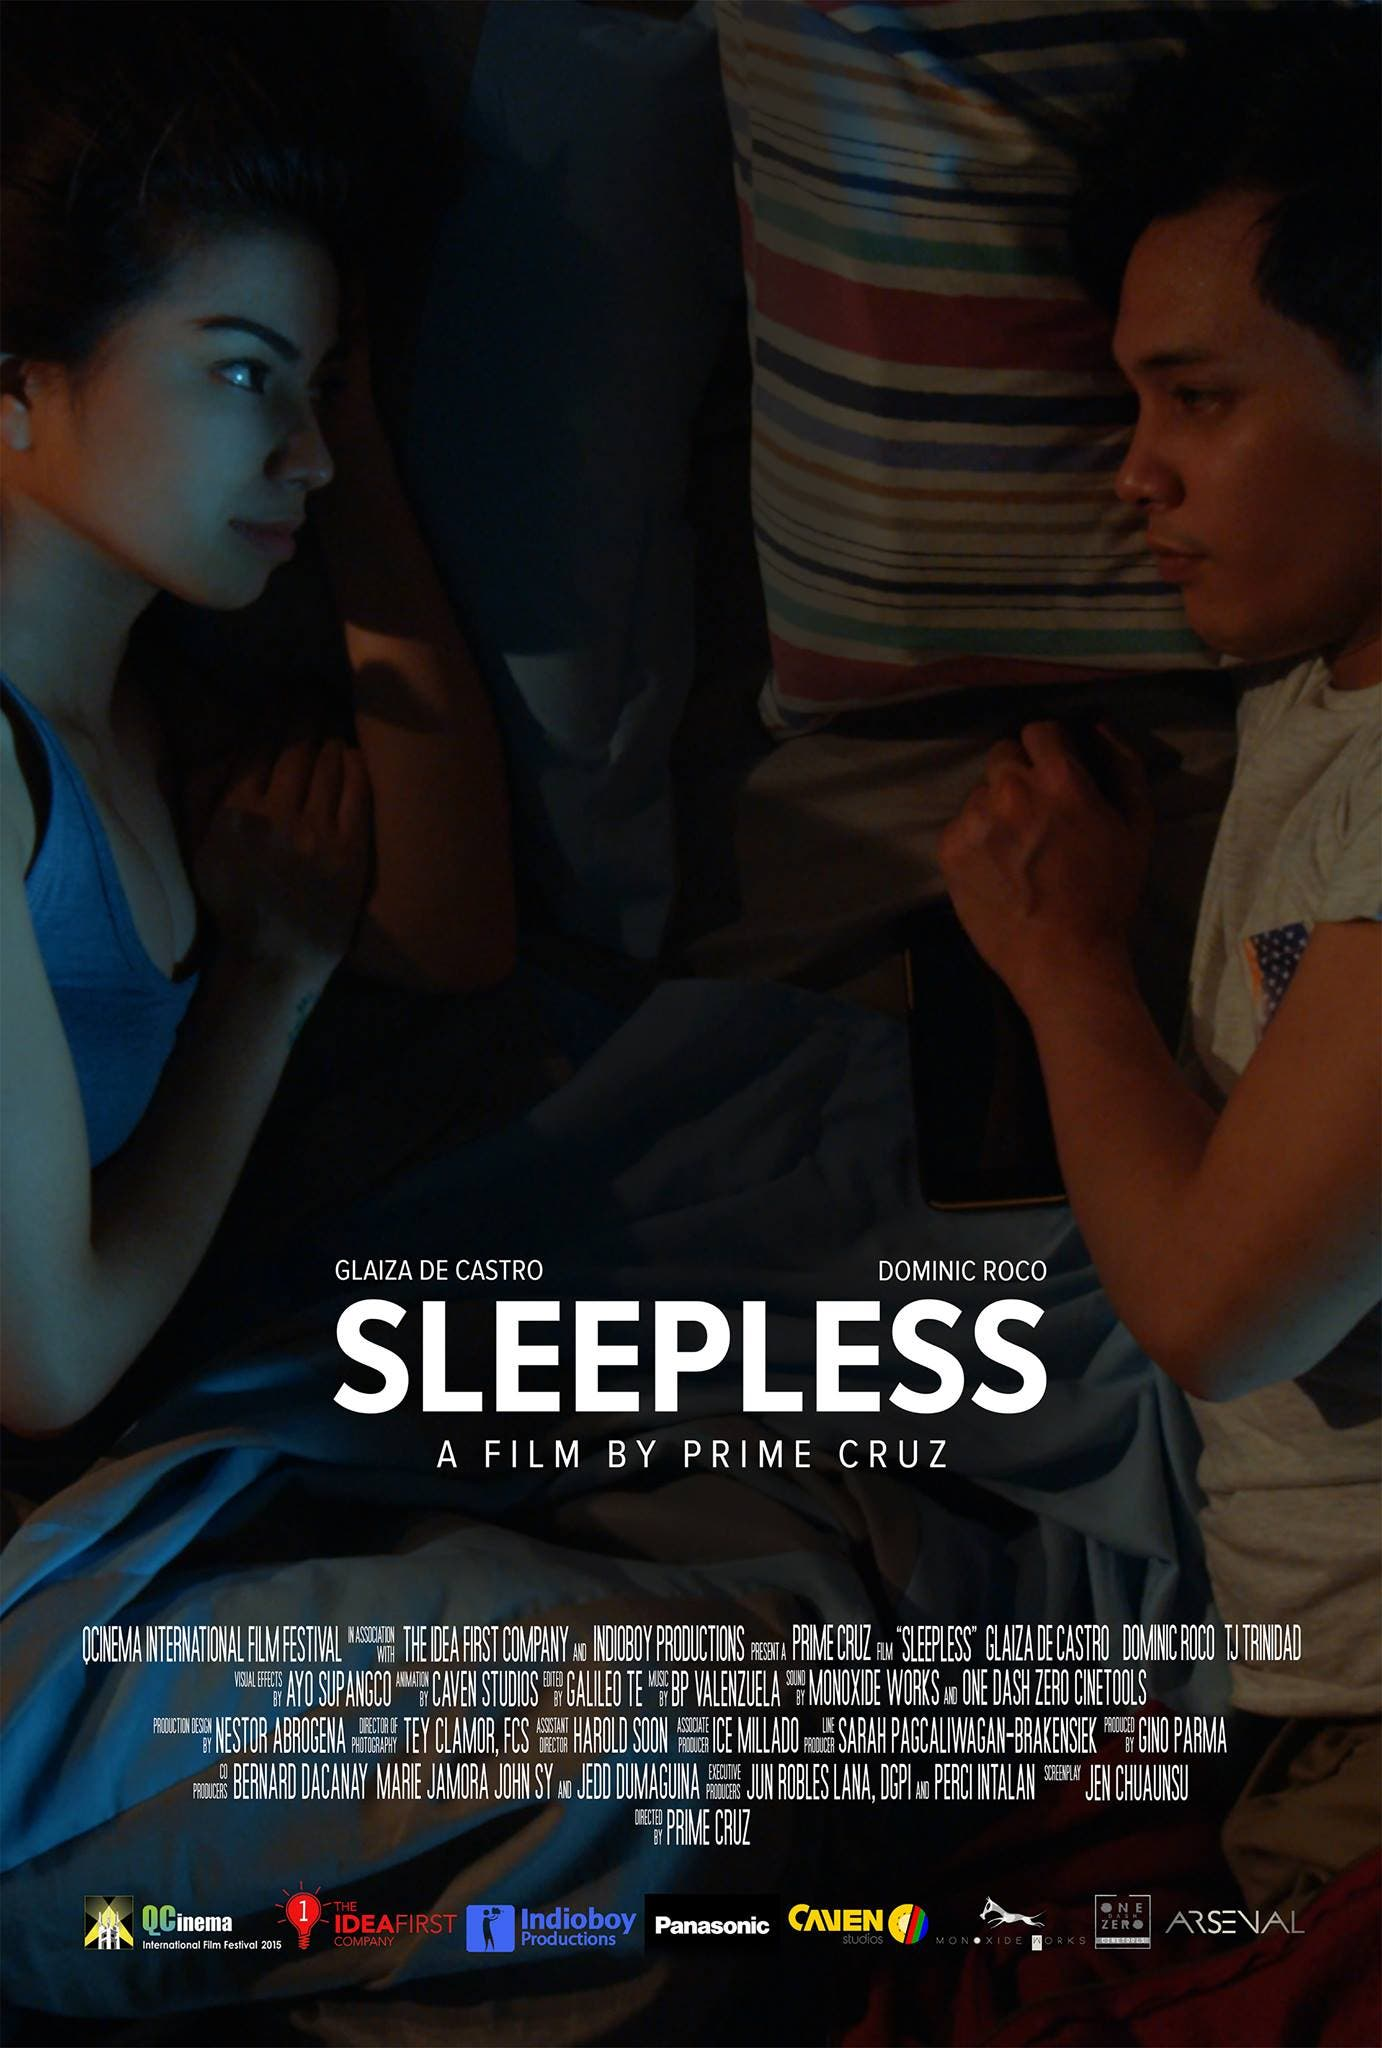 Sleepless film official trailer QCinema International Film Festival Circle Competition Glaiza de Castro Dominic Roco Prime Cruz